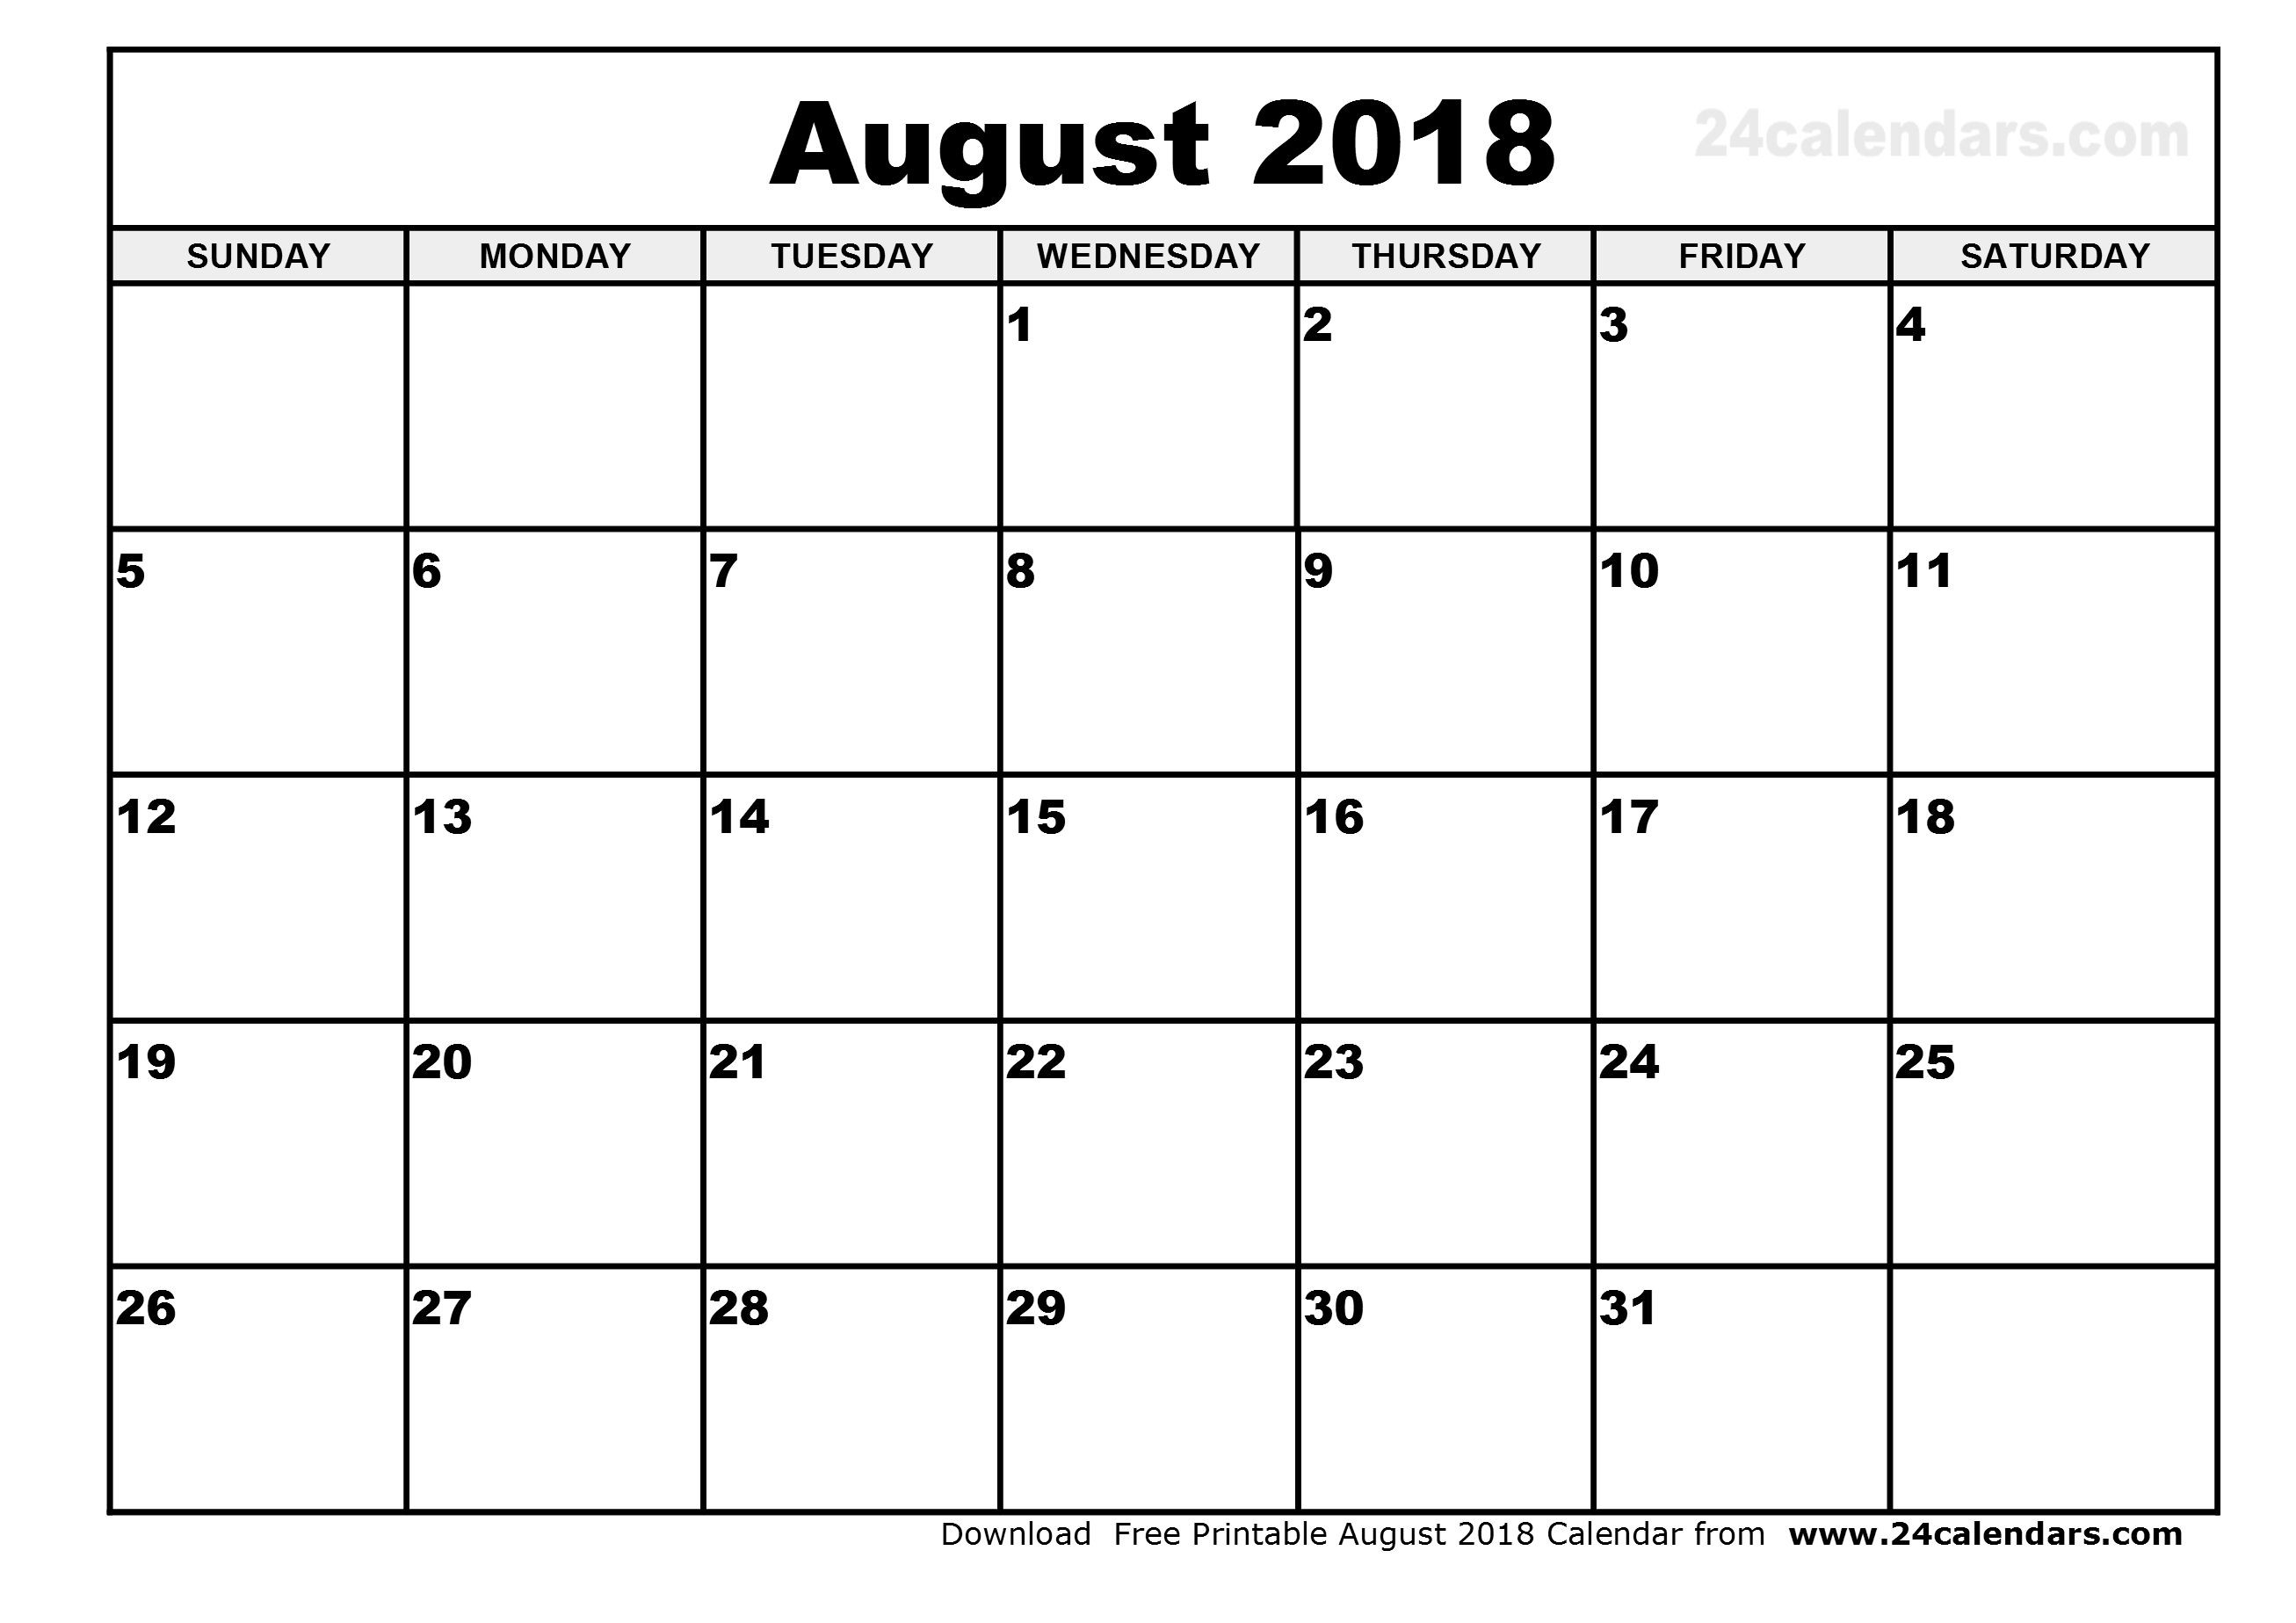 August 2018 Calendar Philippines Holidays | Calendar 2018-August Monthly Calendar Template